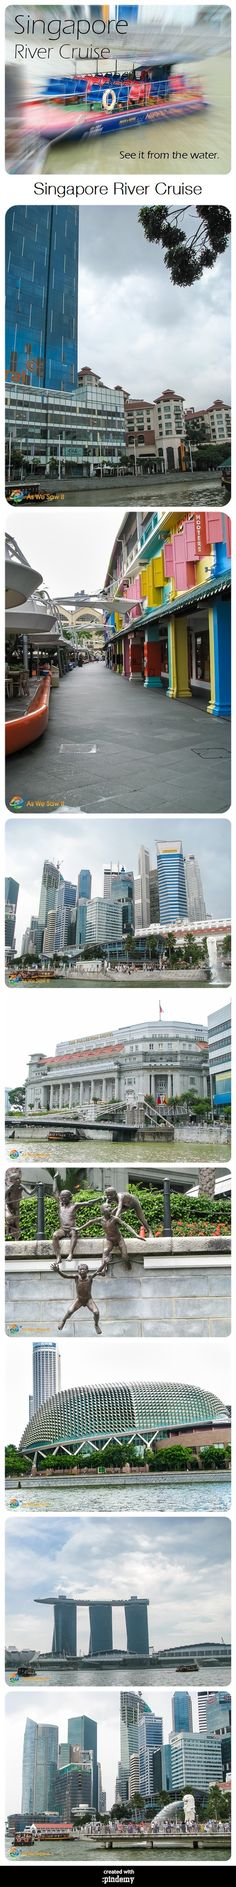 Some of the sights you can see on a Singapore River cruise